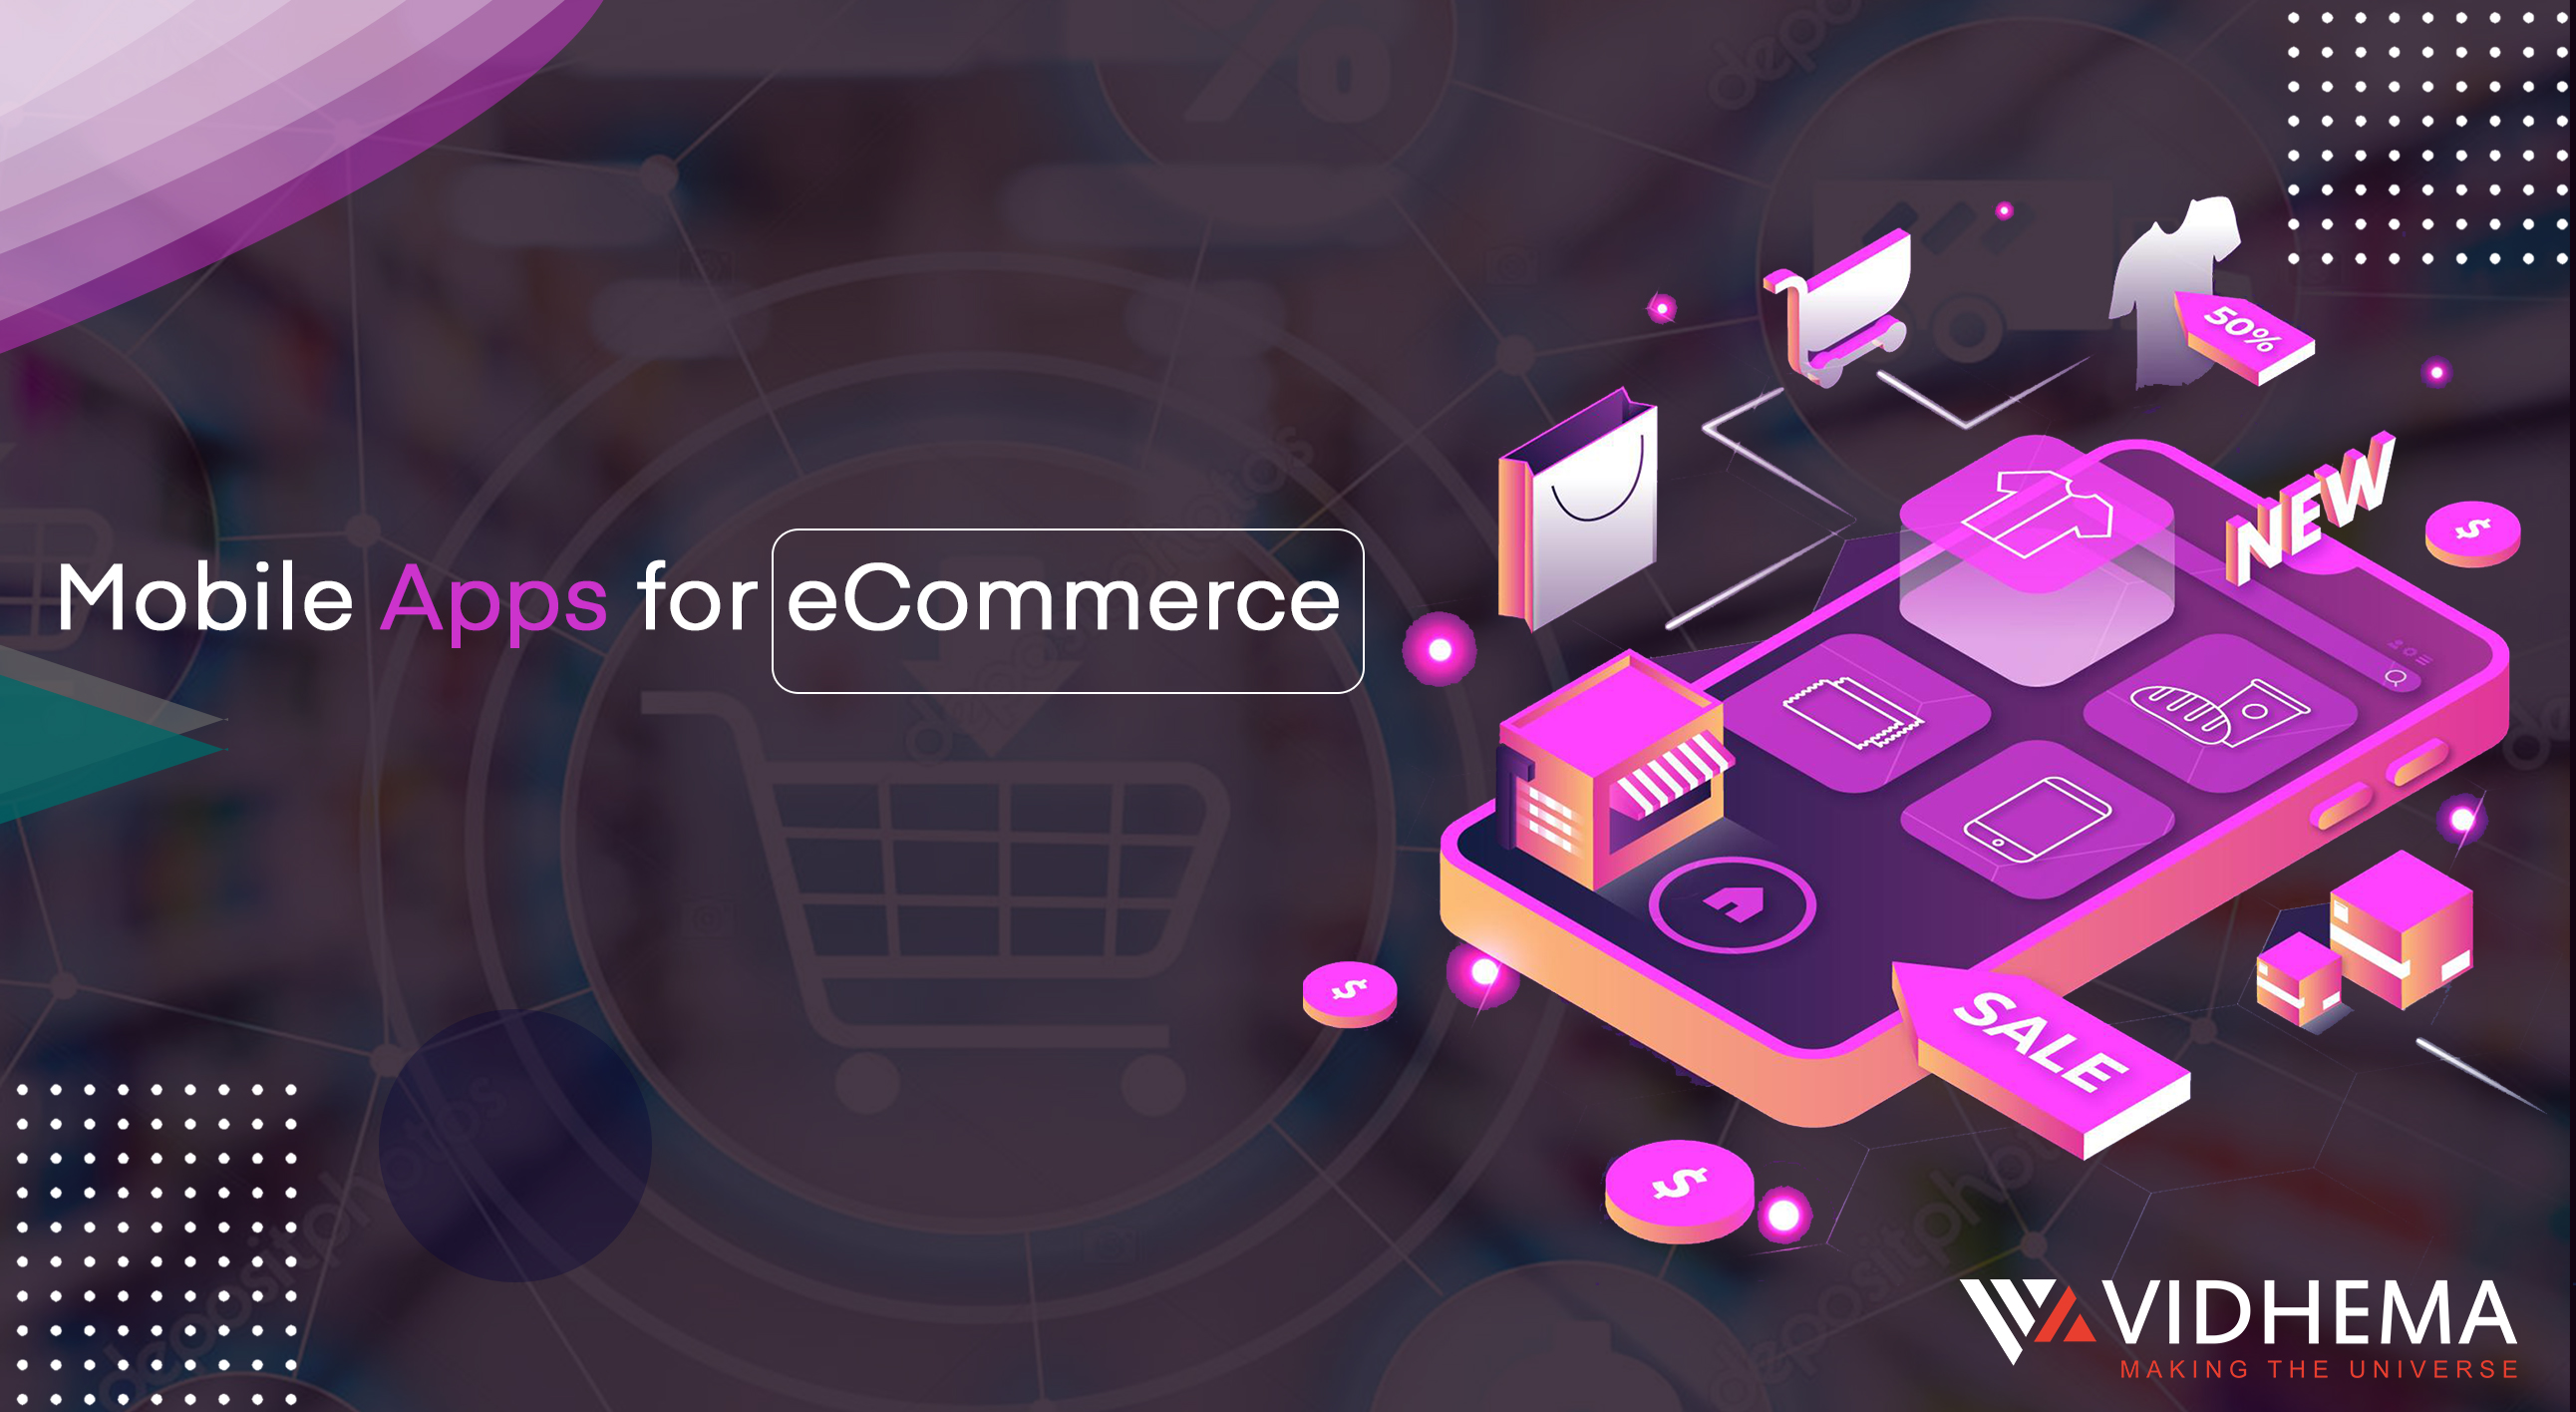 Mobile Apps for eCommerce